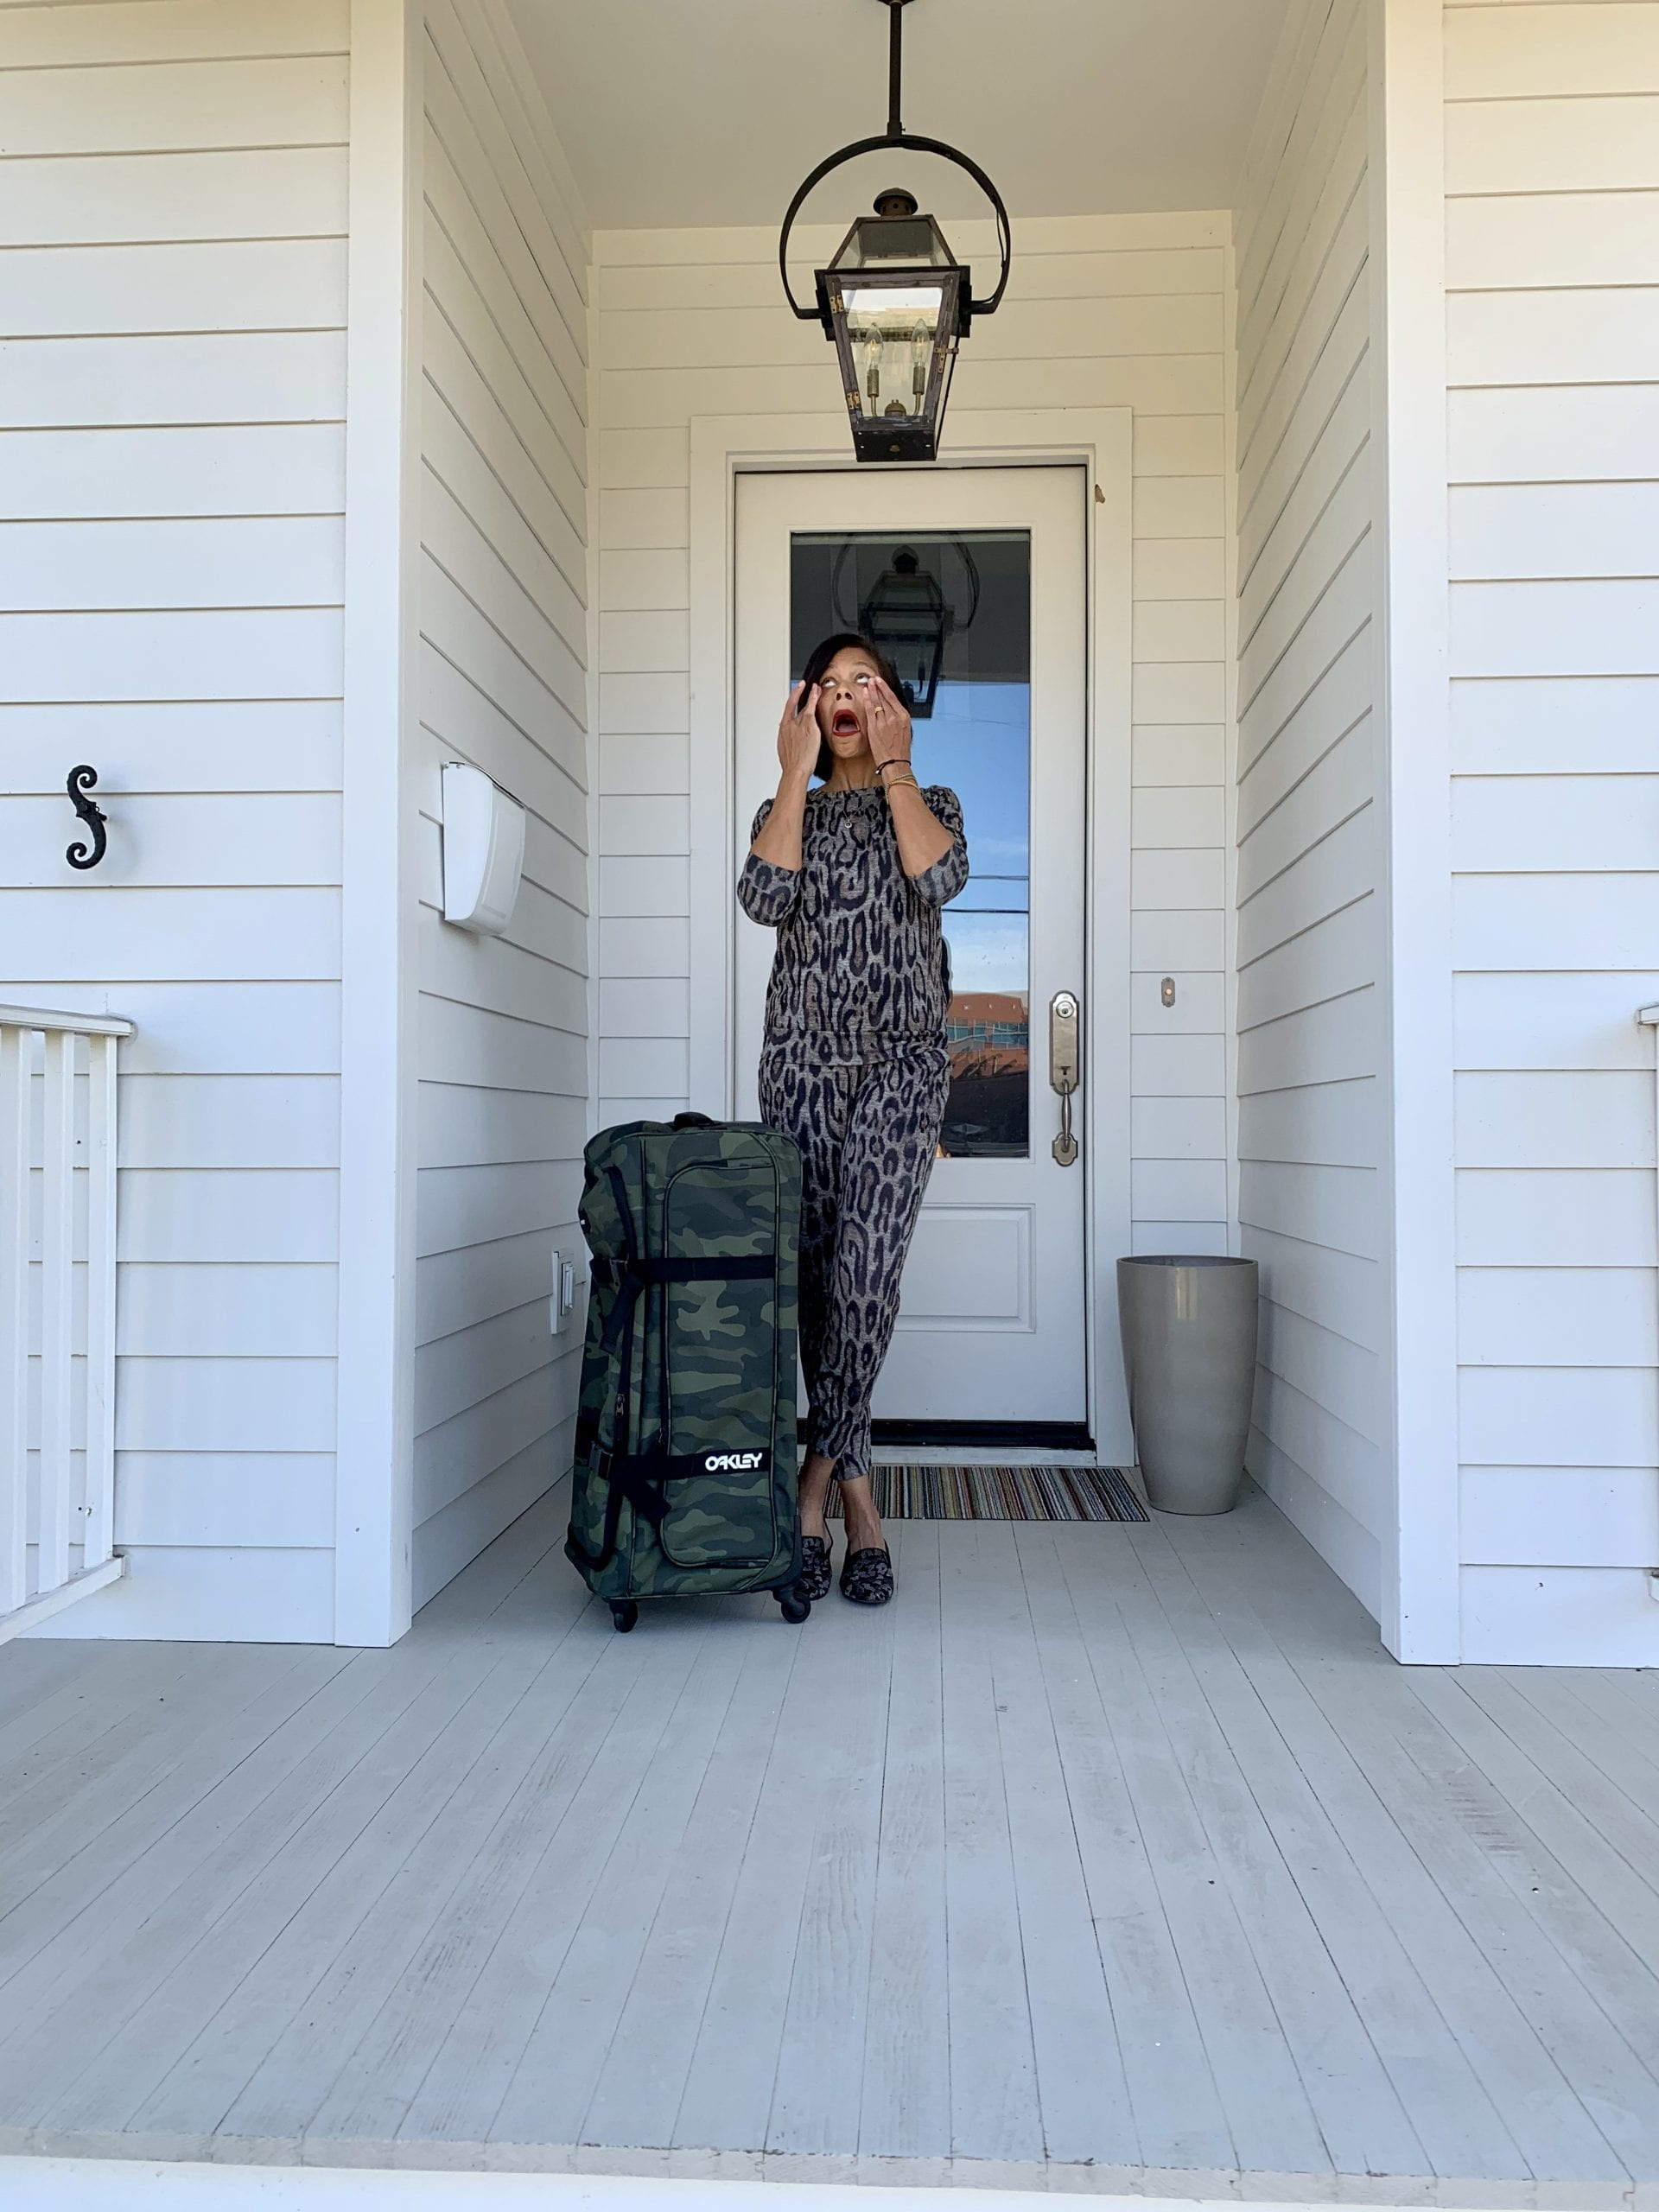 stressed woman on porch with luggage